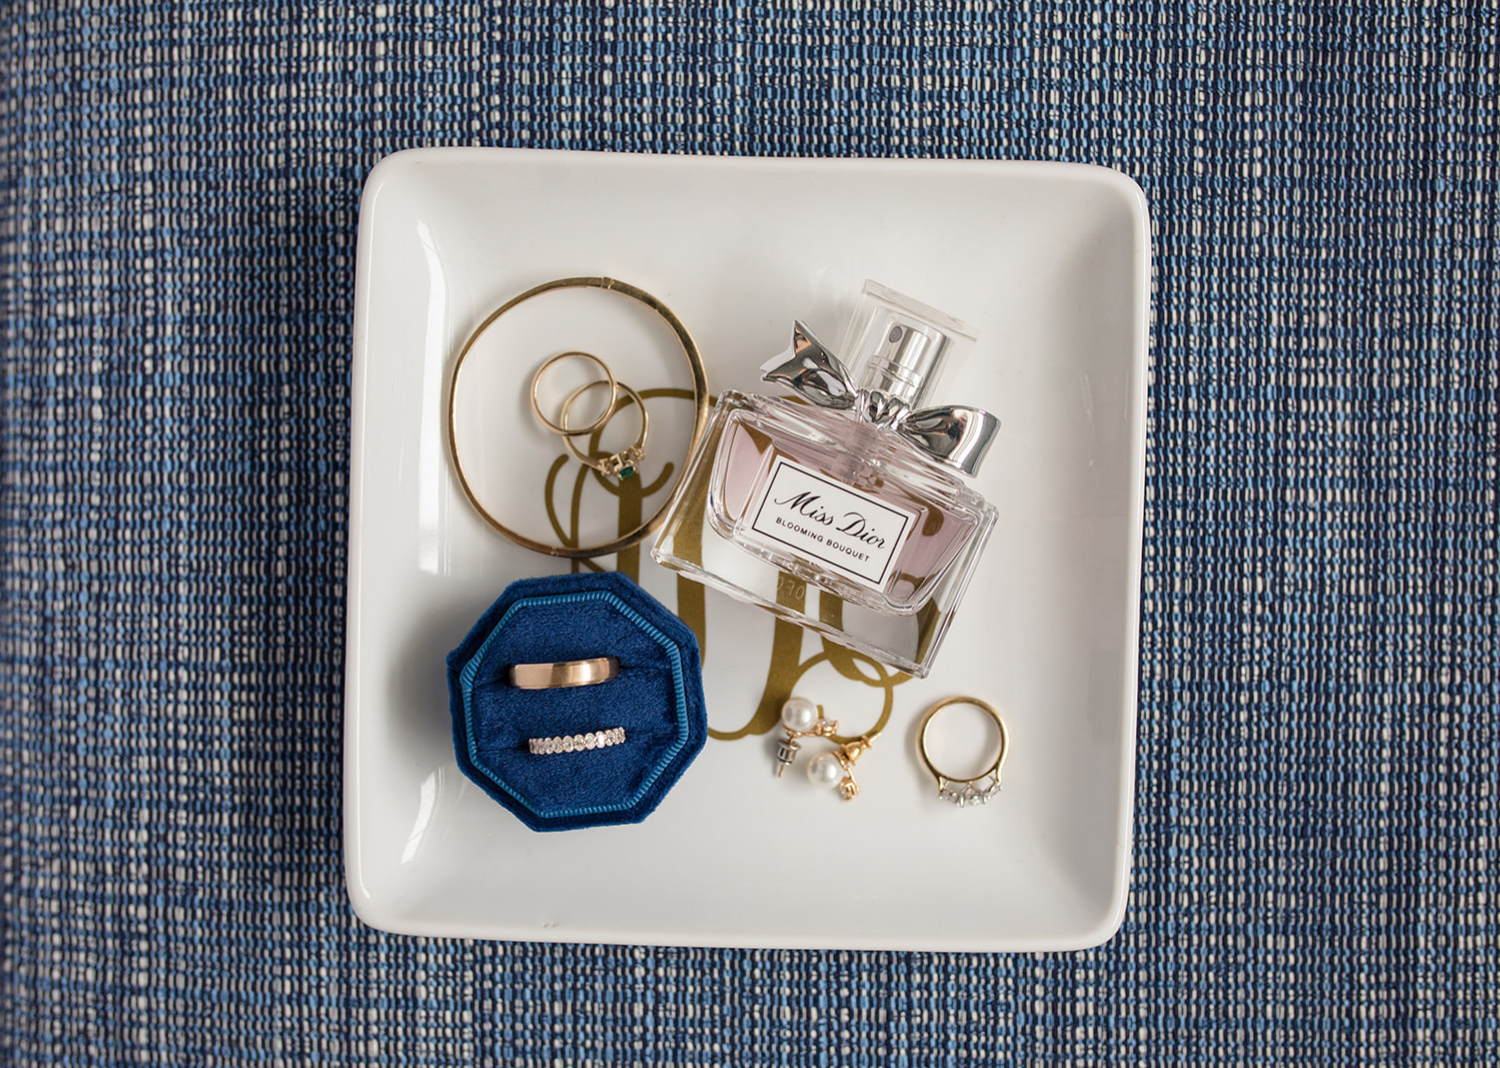 wedding rings and wedding accessories on a flat lay